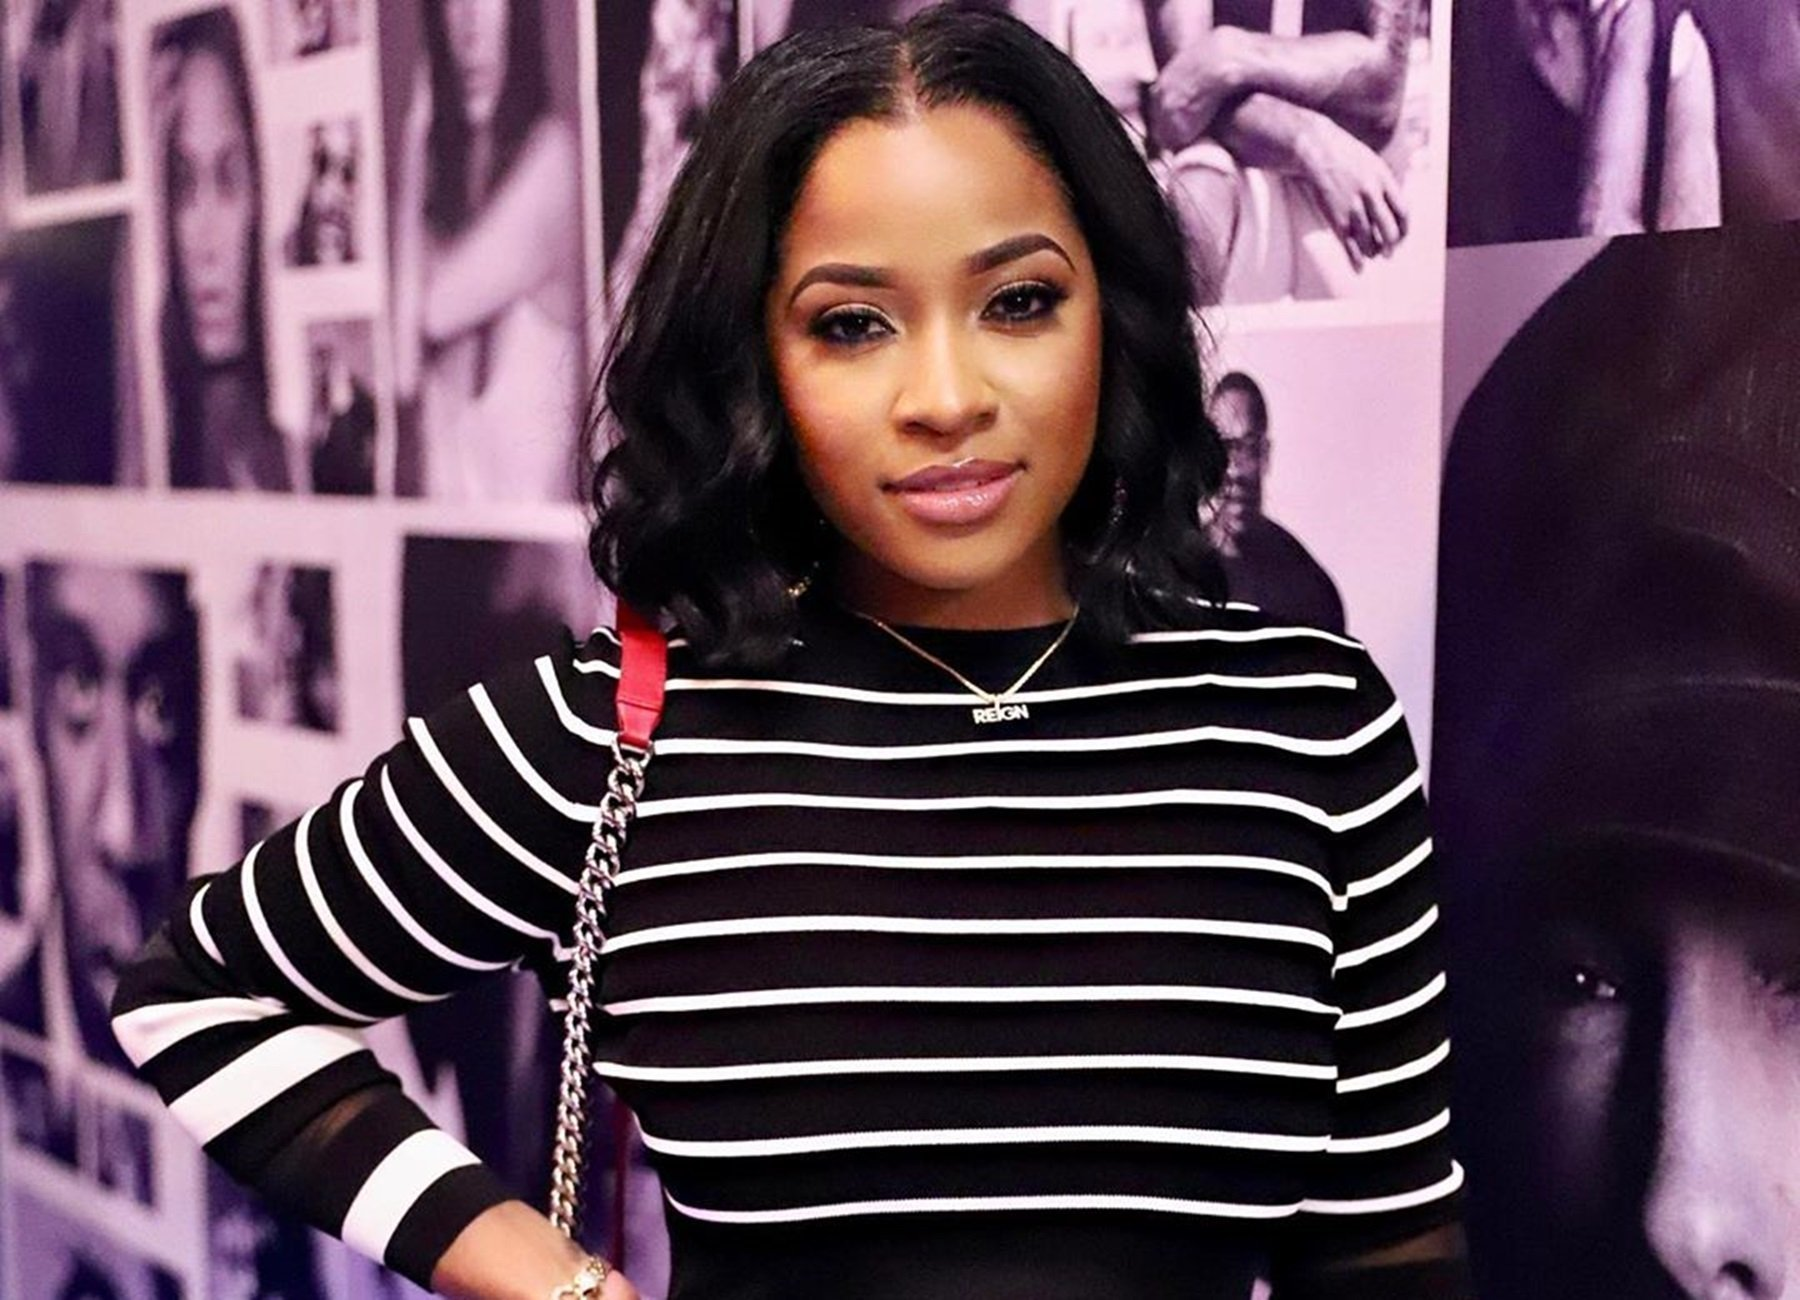 Toya Johnson Is Excited To Try The FabFitFun Goodies – Check Out The Post She Shared